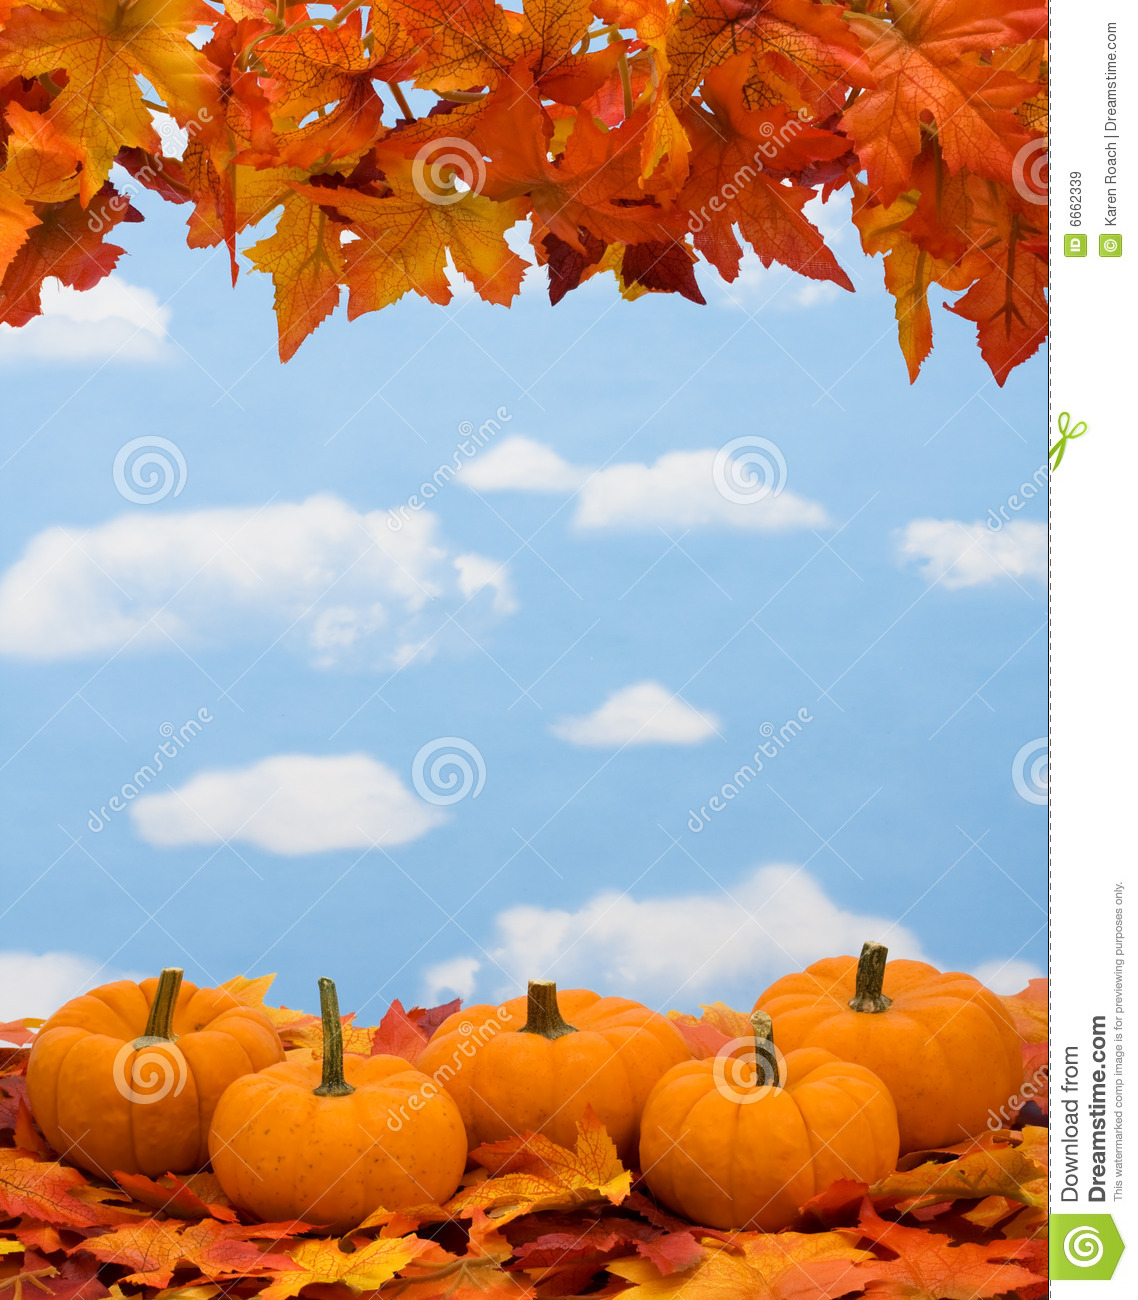 Fall Leaves With Pumpkin On Sky Background Fall Harvest